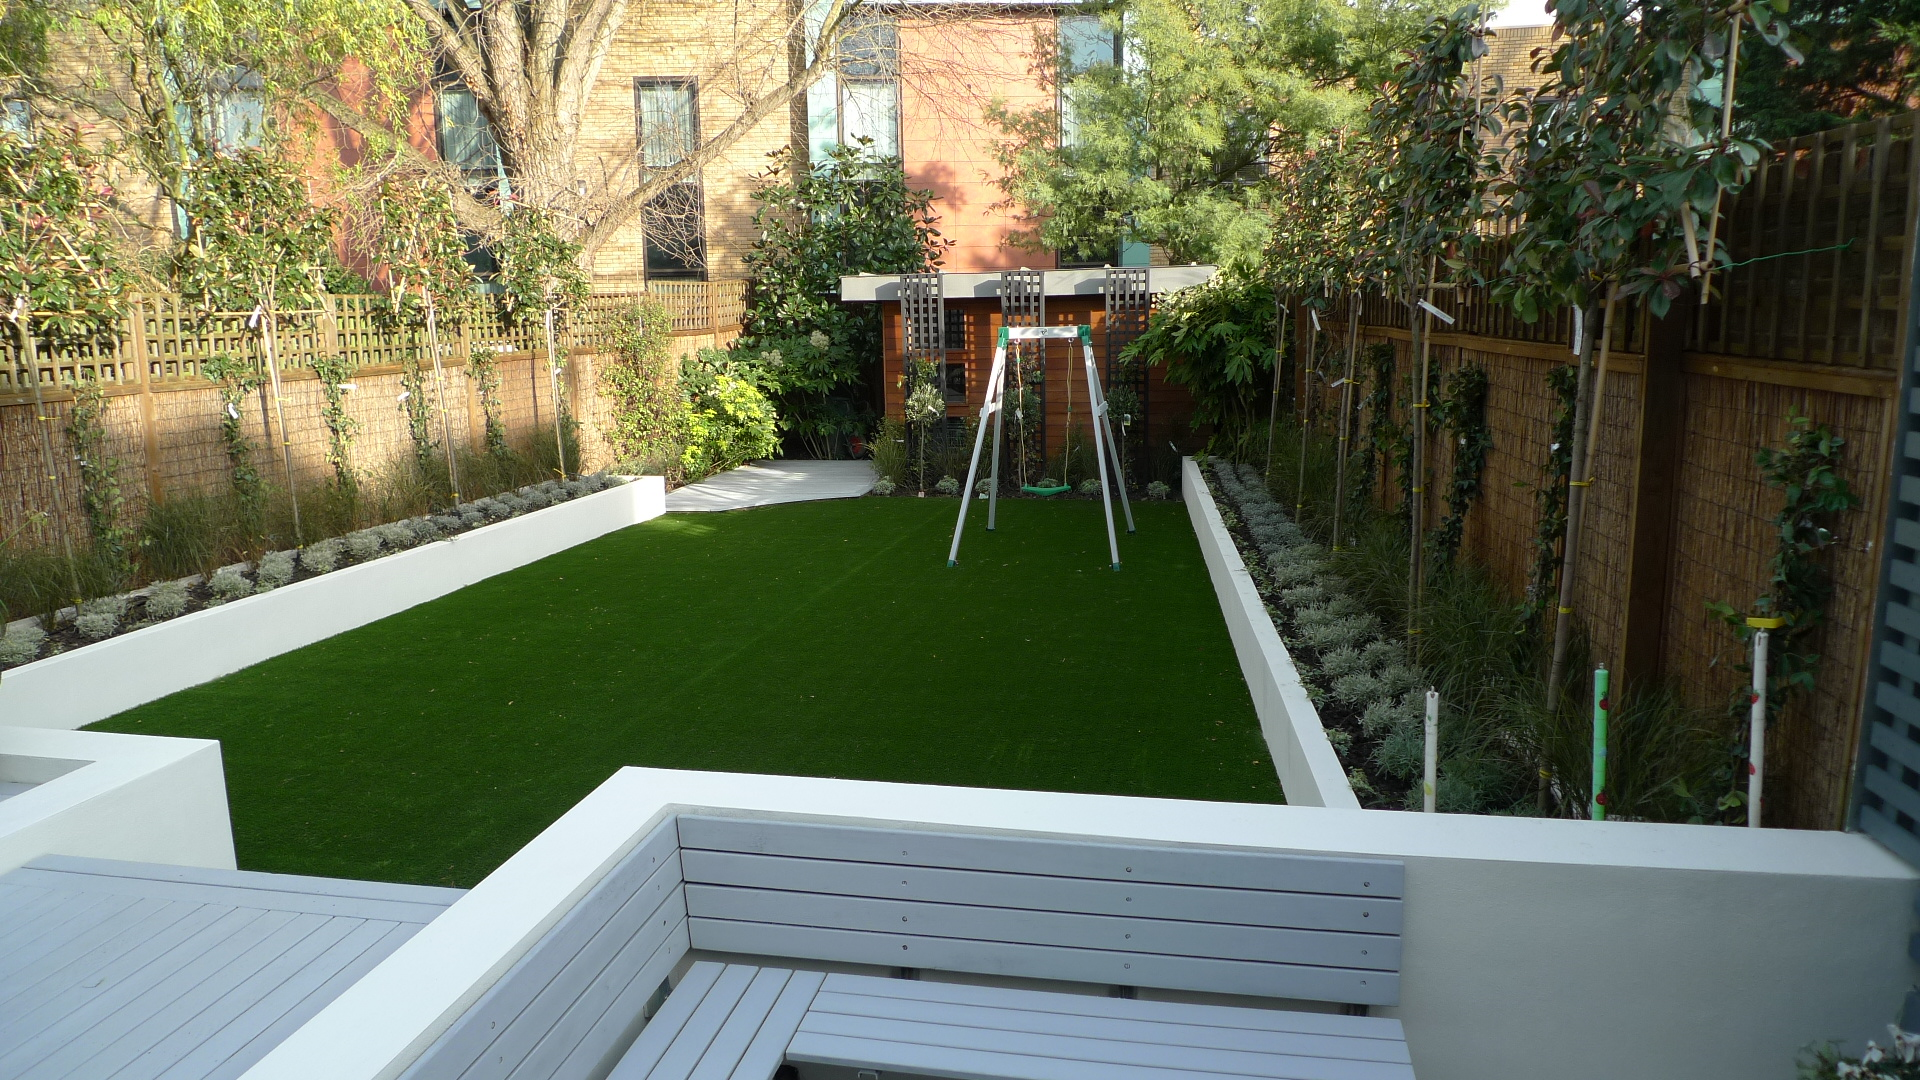 Modern garden design ideas london london garden design for Modern yard ideas